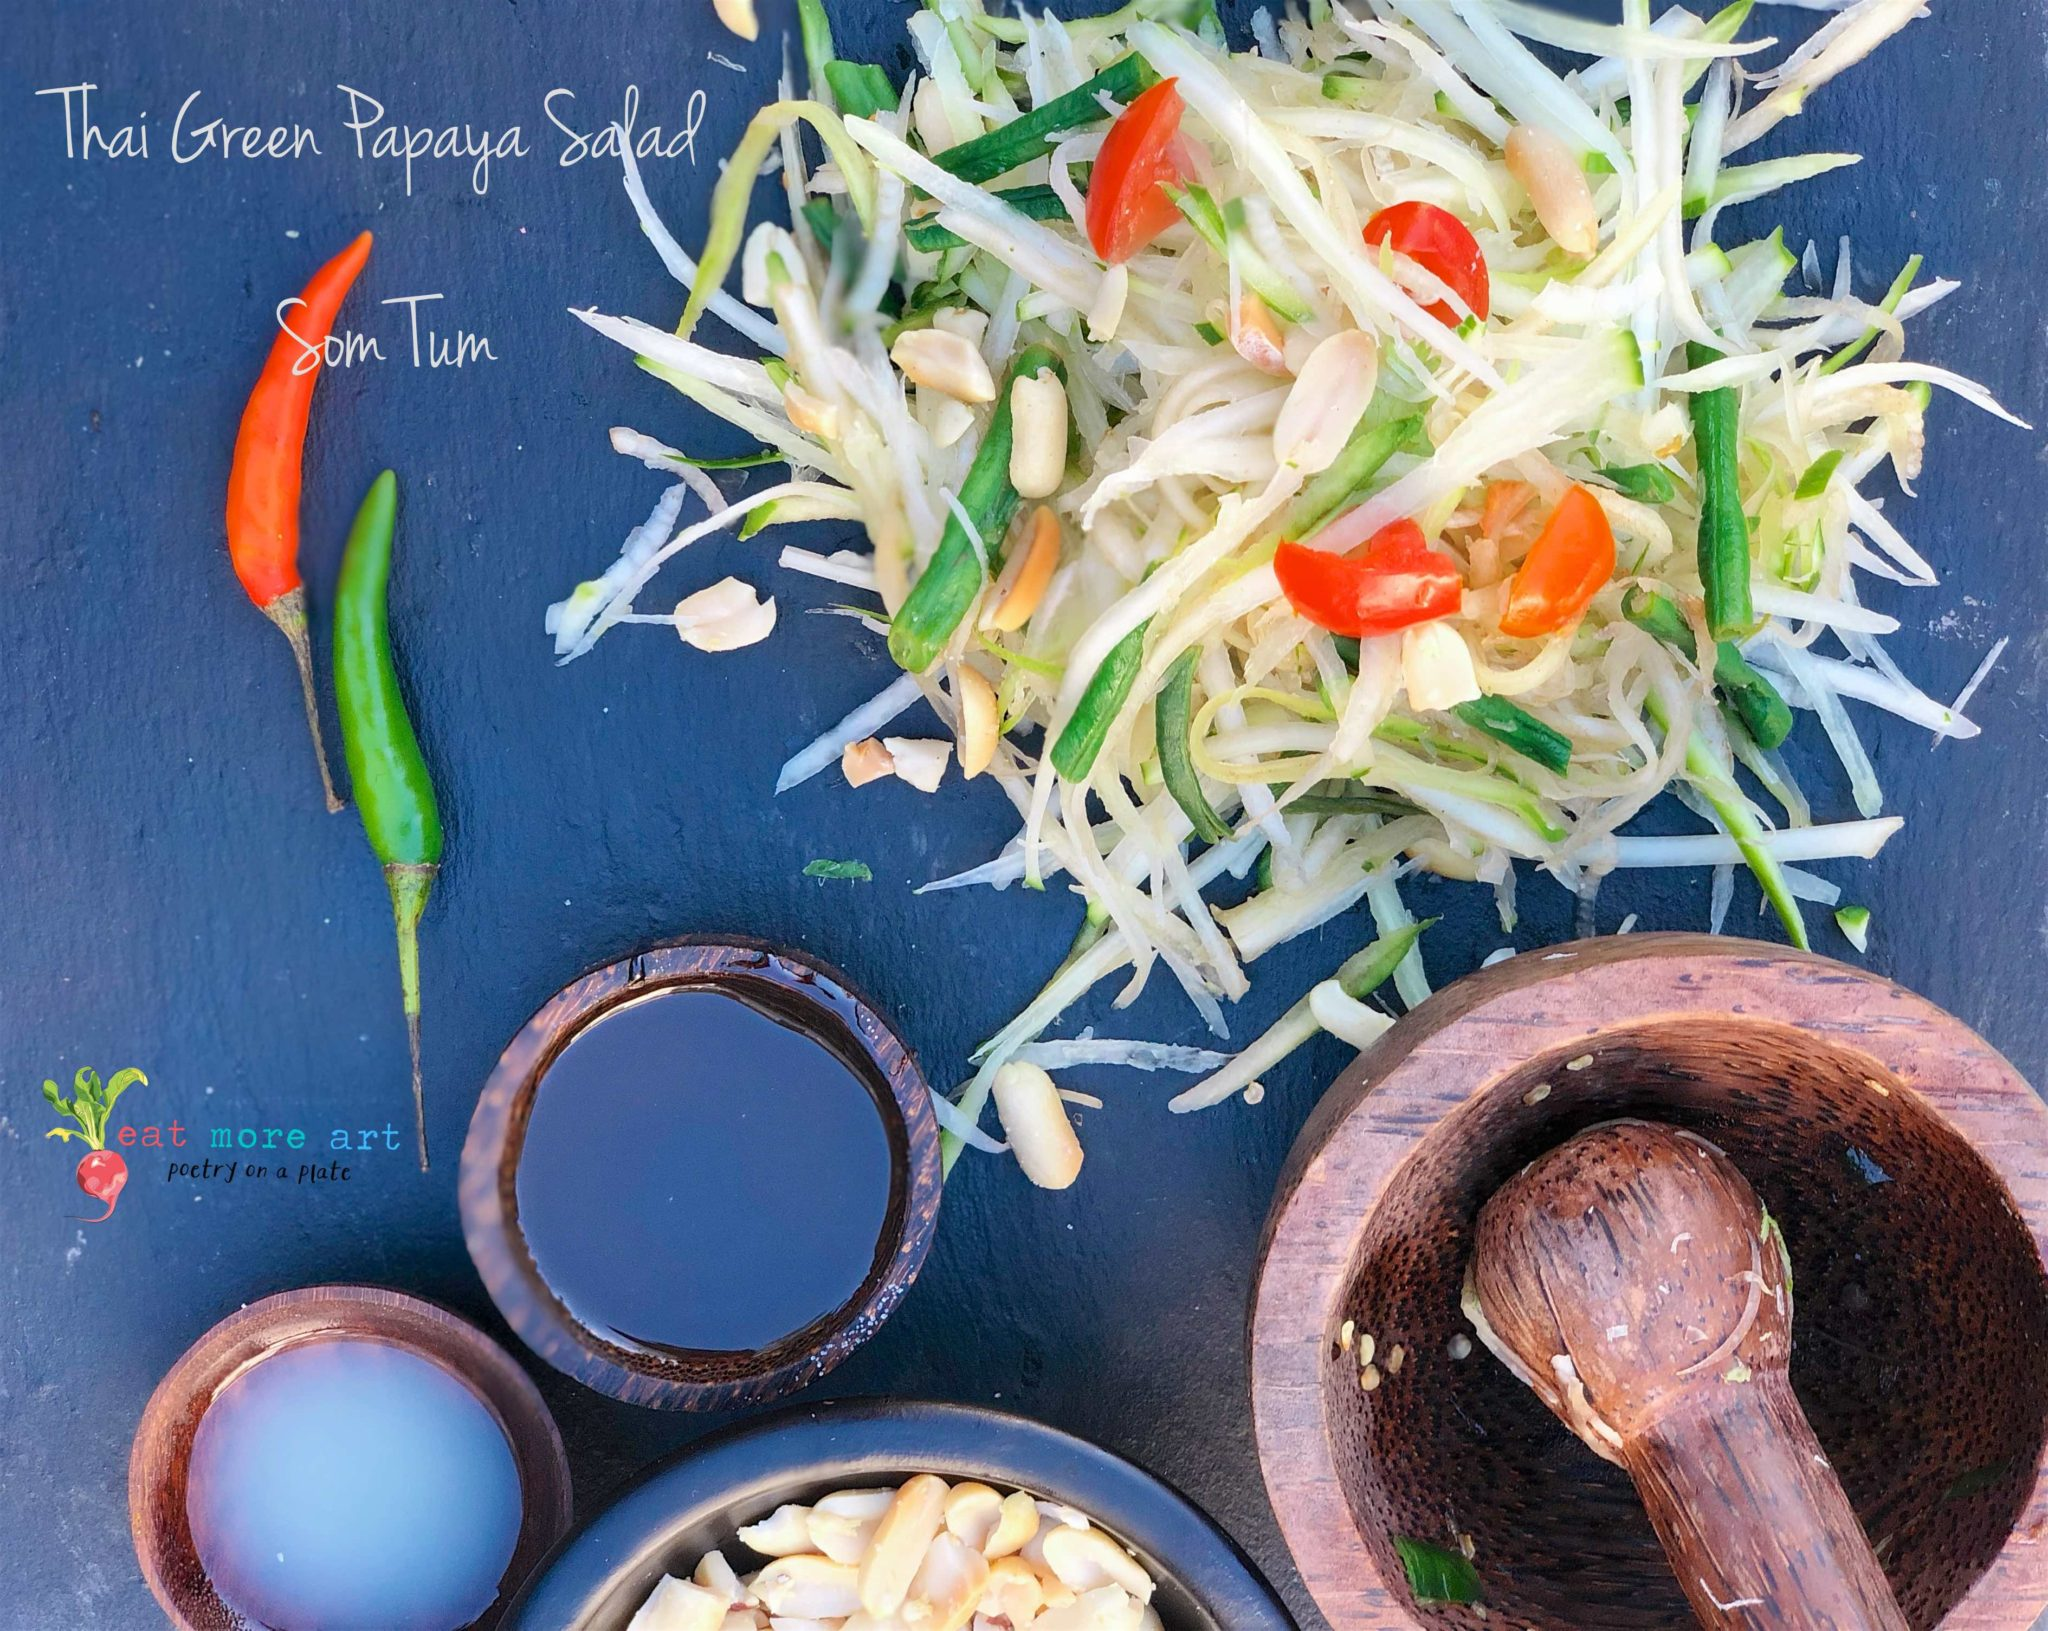 An overhead shot of Thai green papaya salad